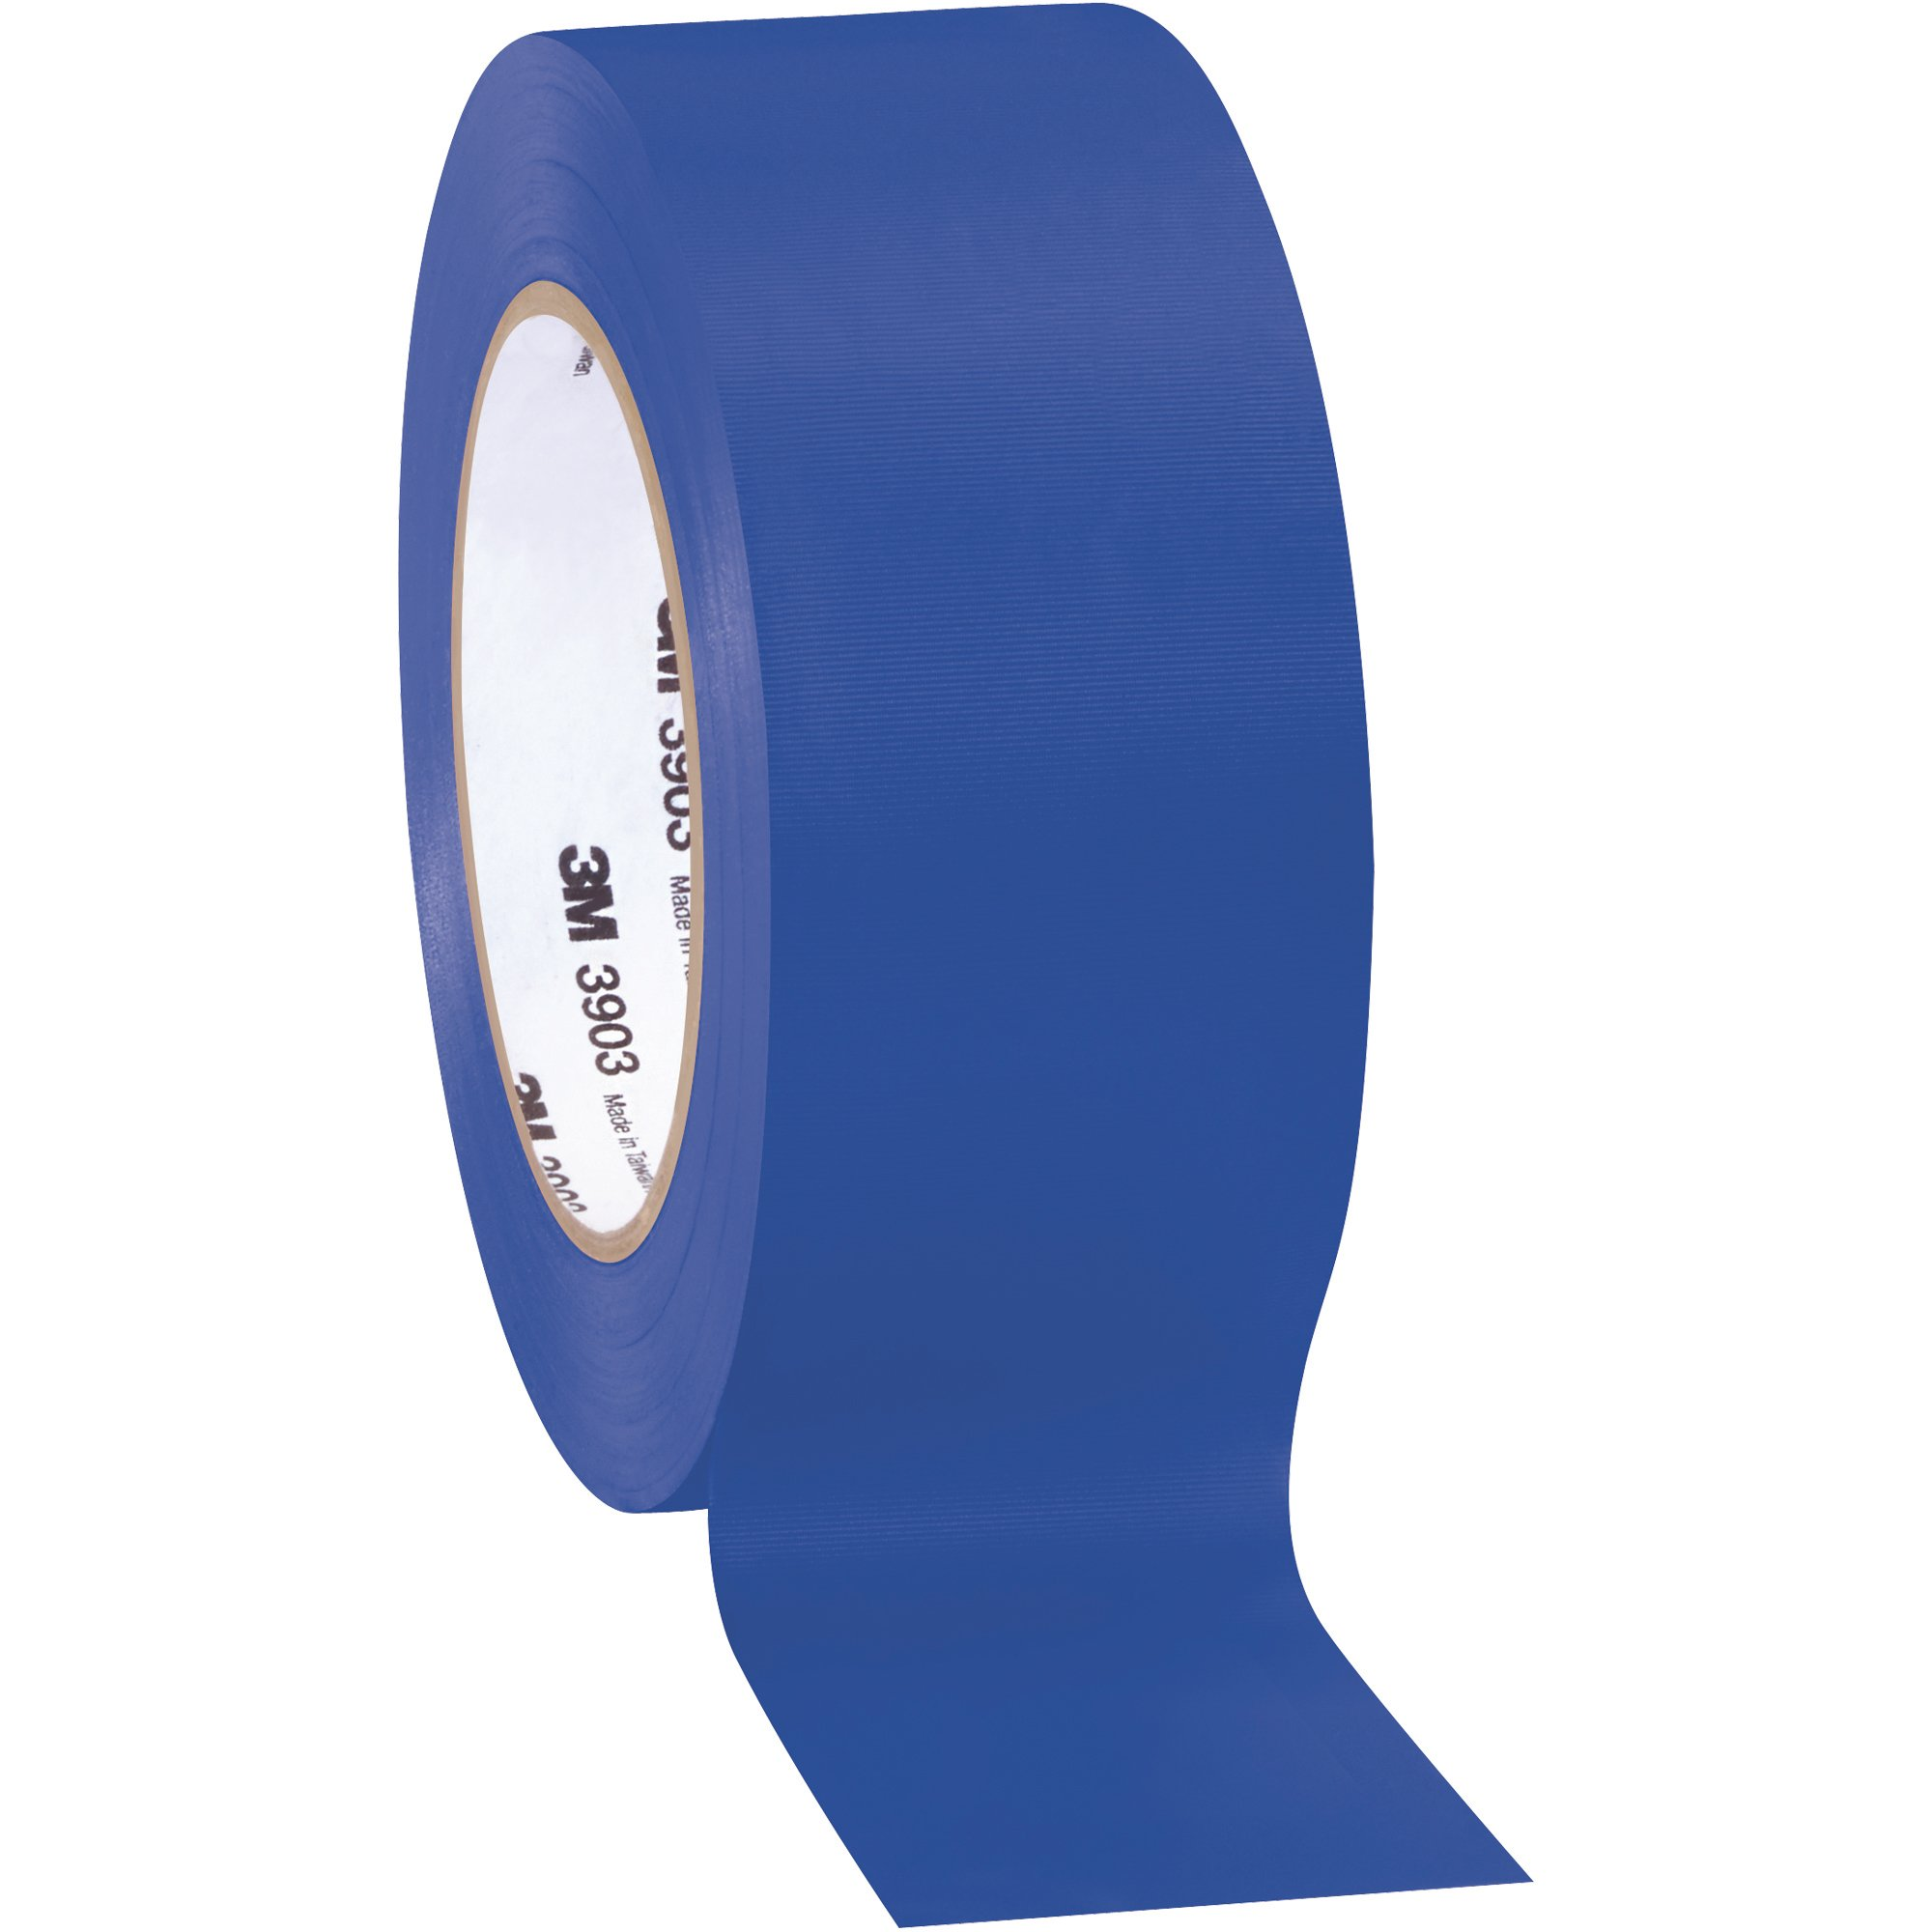 Top Pack Supply 3M 3903 Duct Tape, 6.3 Mil, 2'' x 50 yds. Blue (Case of 3)